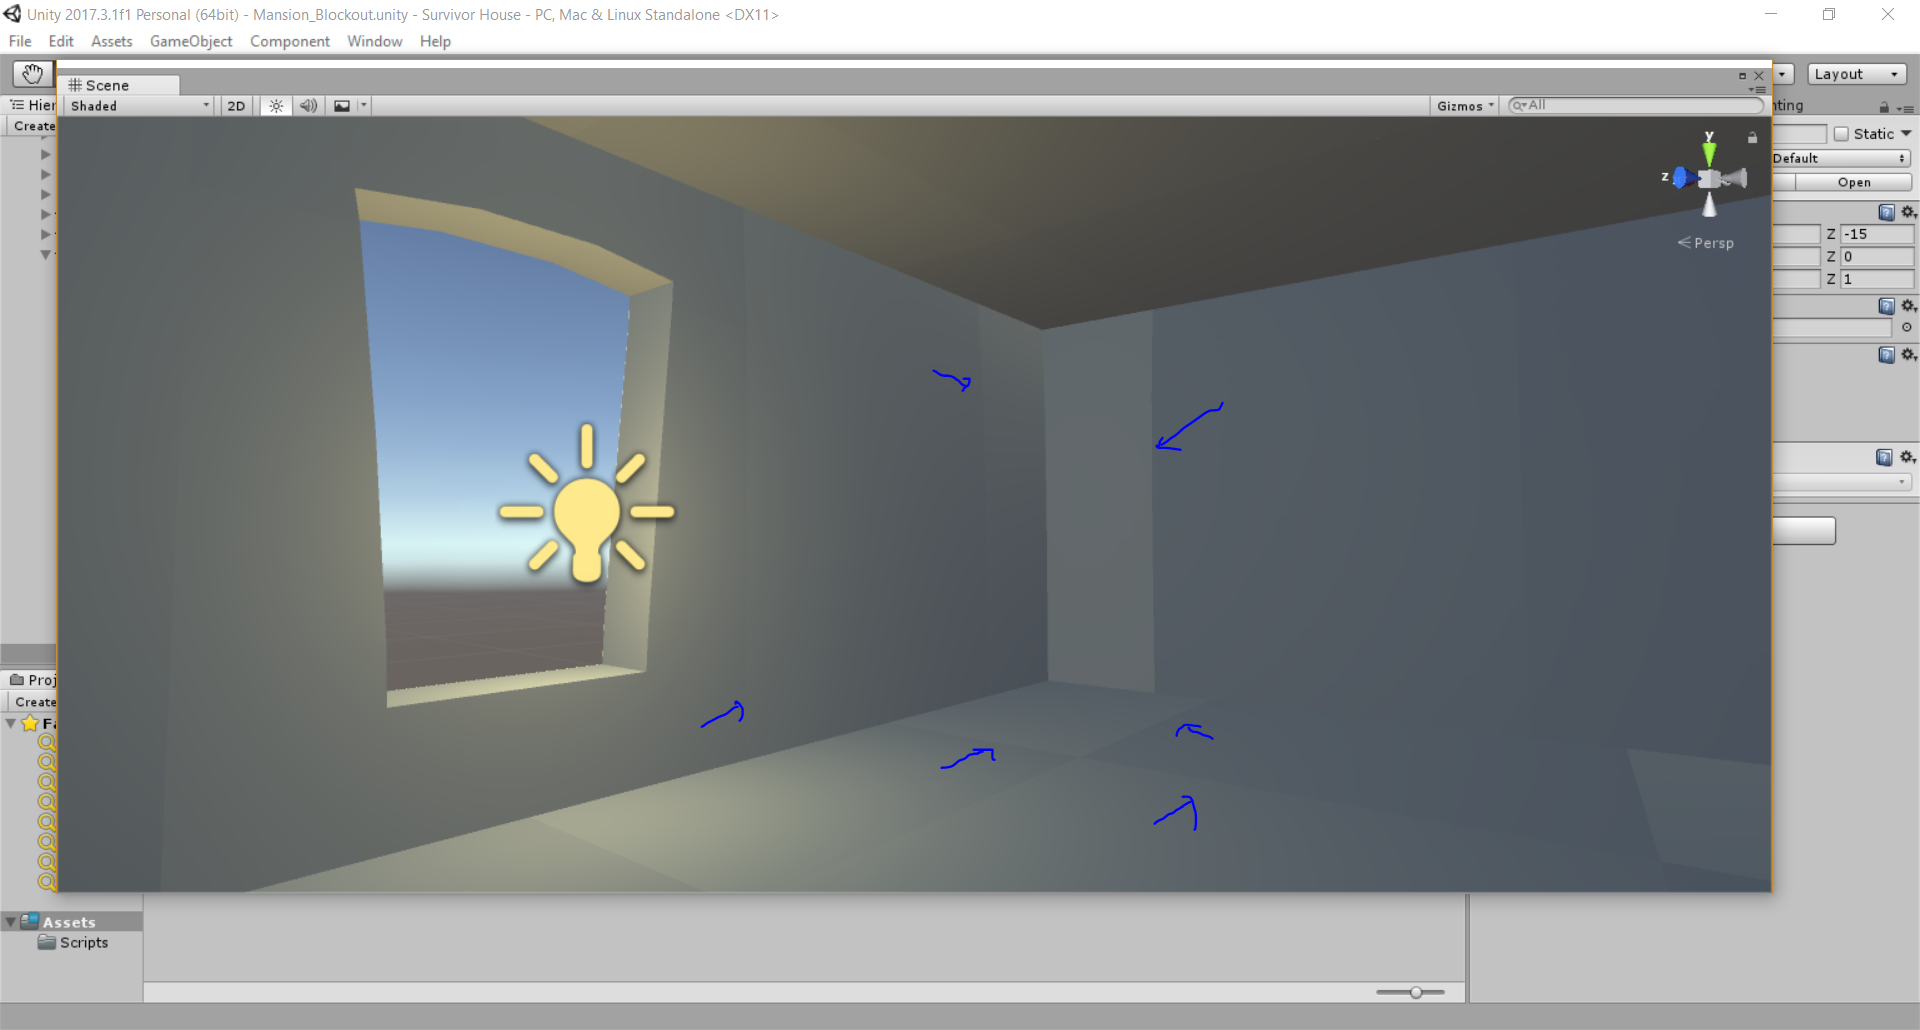 Maya] to [Unity] Tiled Mesh, Lighting Problem At Connection